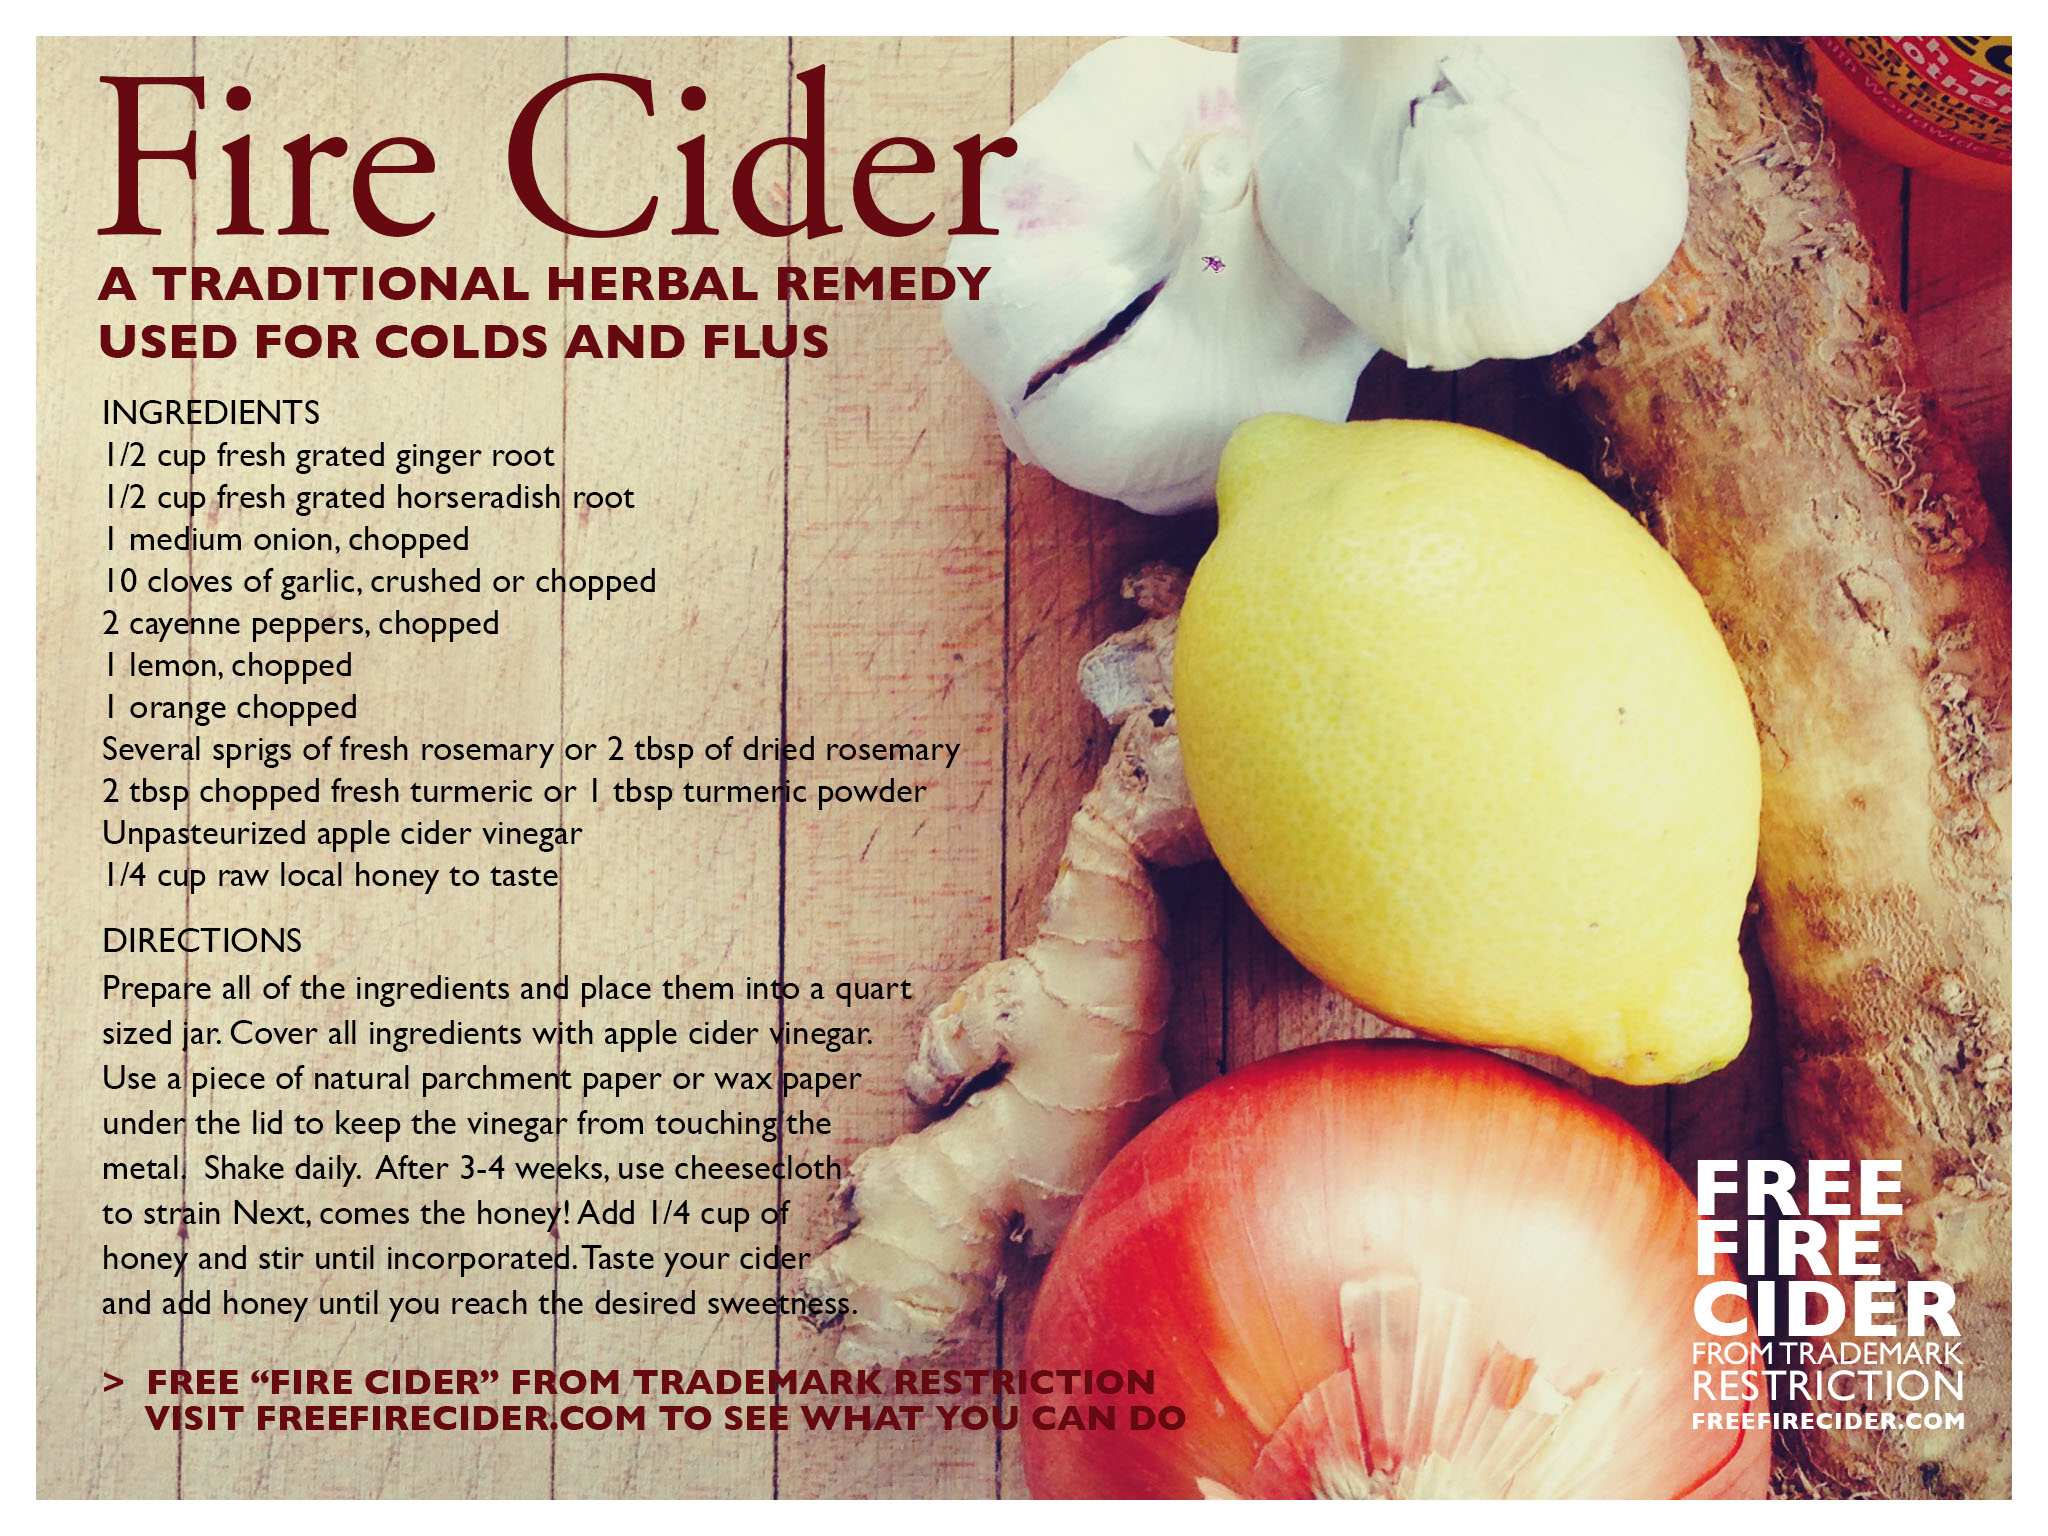 Help preserve an herbal legacy Fire Cider, a tradition not a trademark. For more information on how to preserve an herbal tradition write to    freefirecider@gmail.com